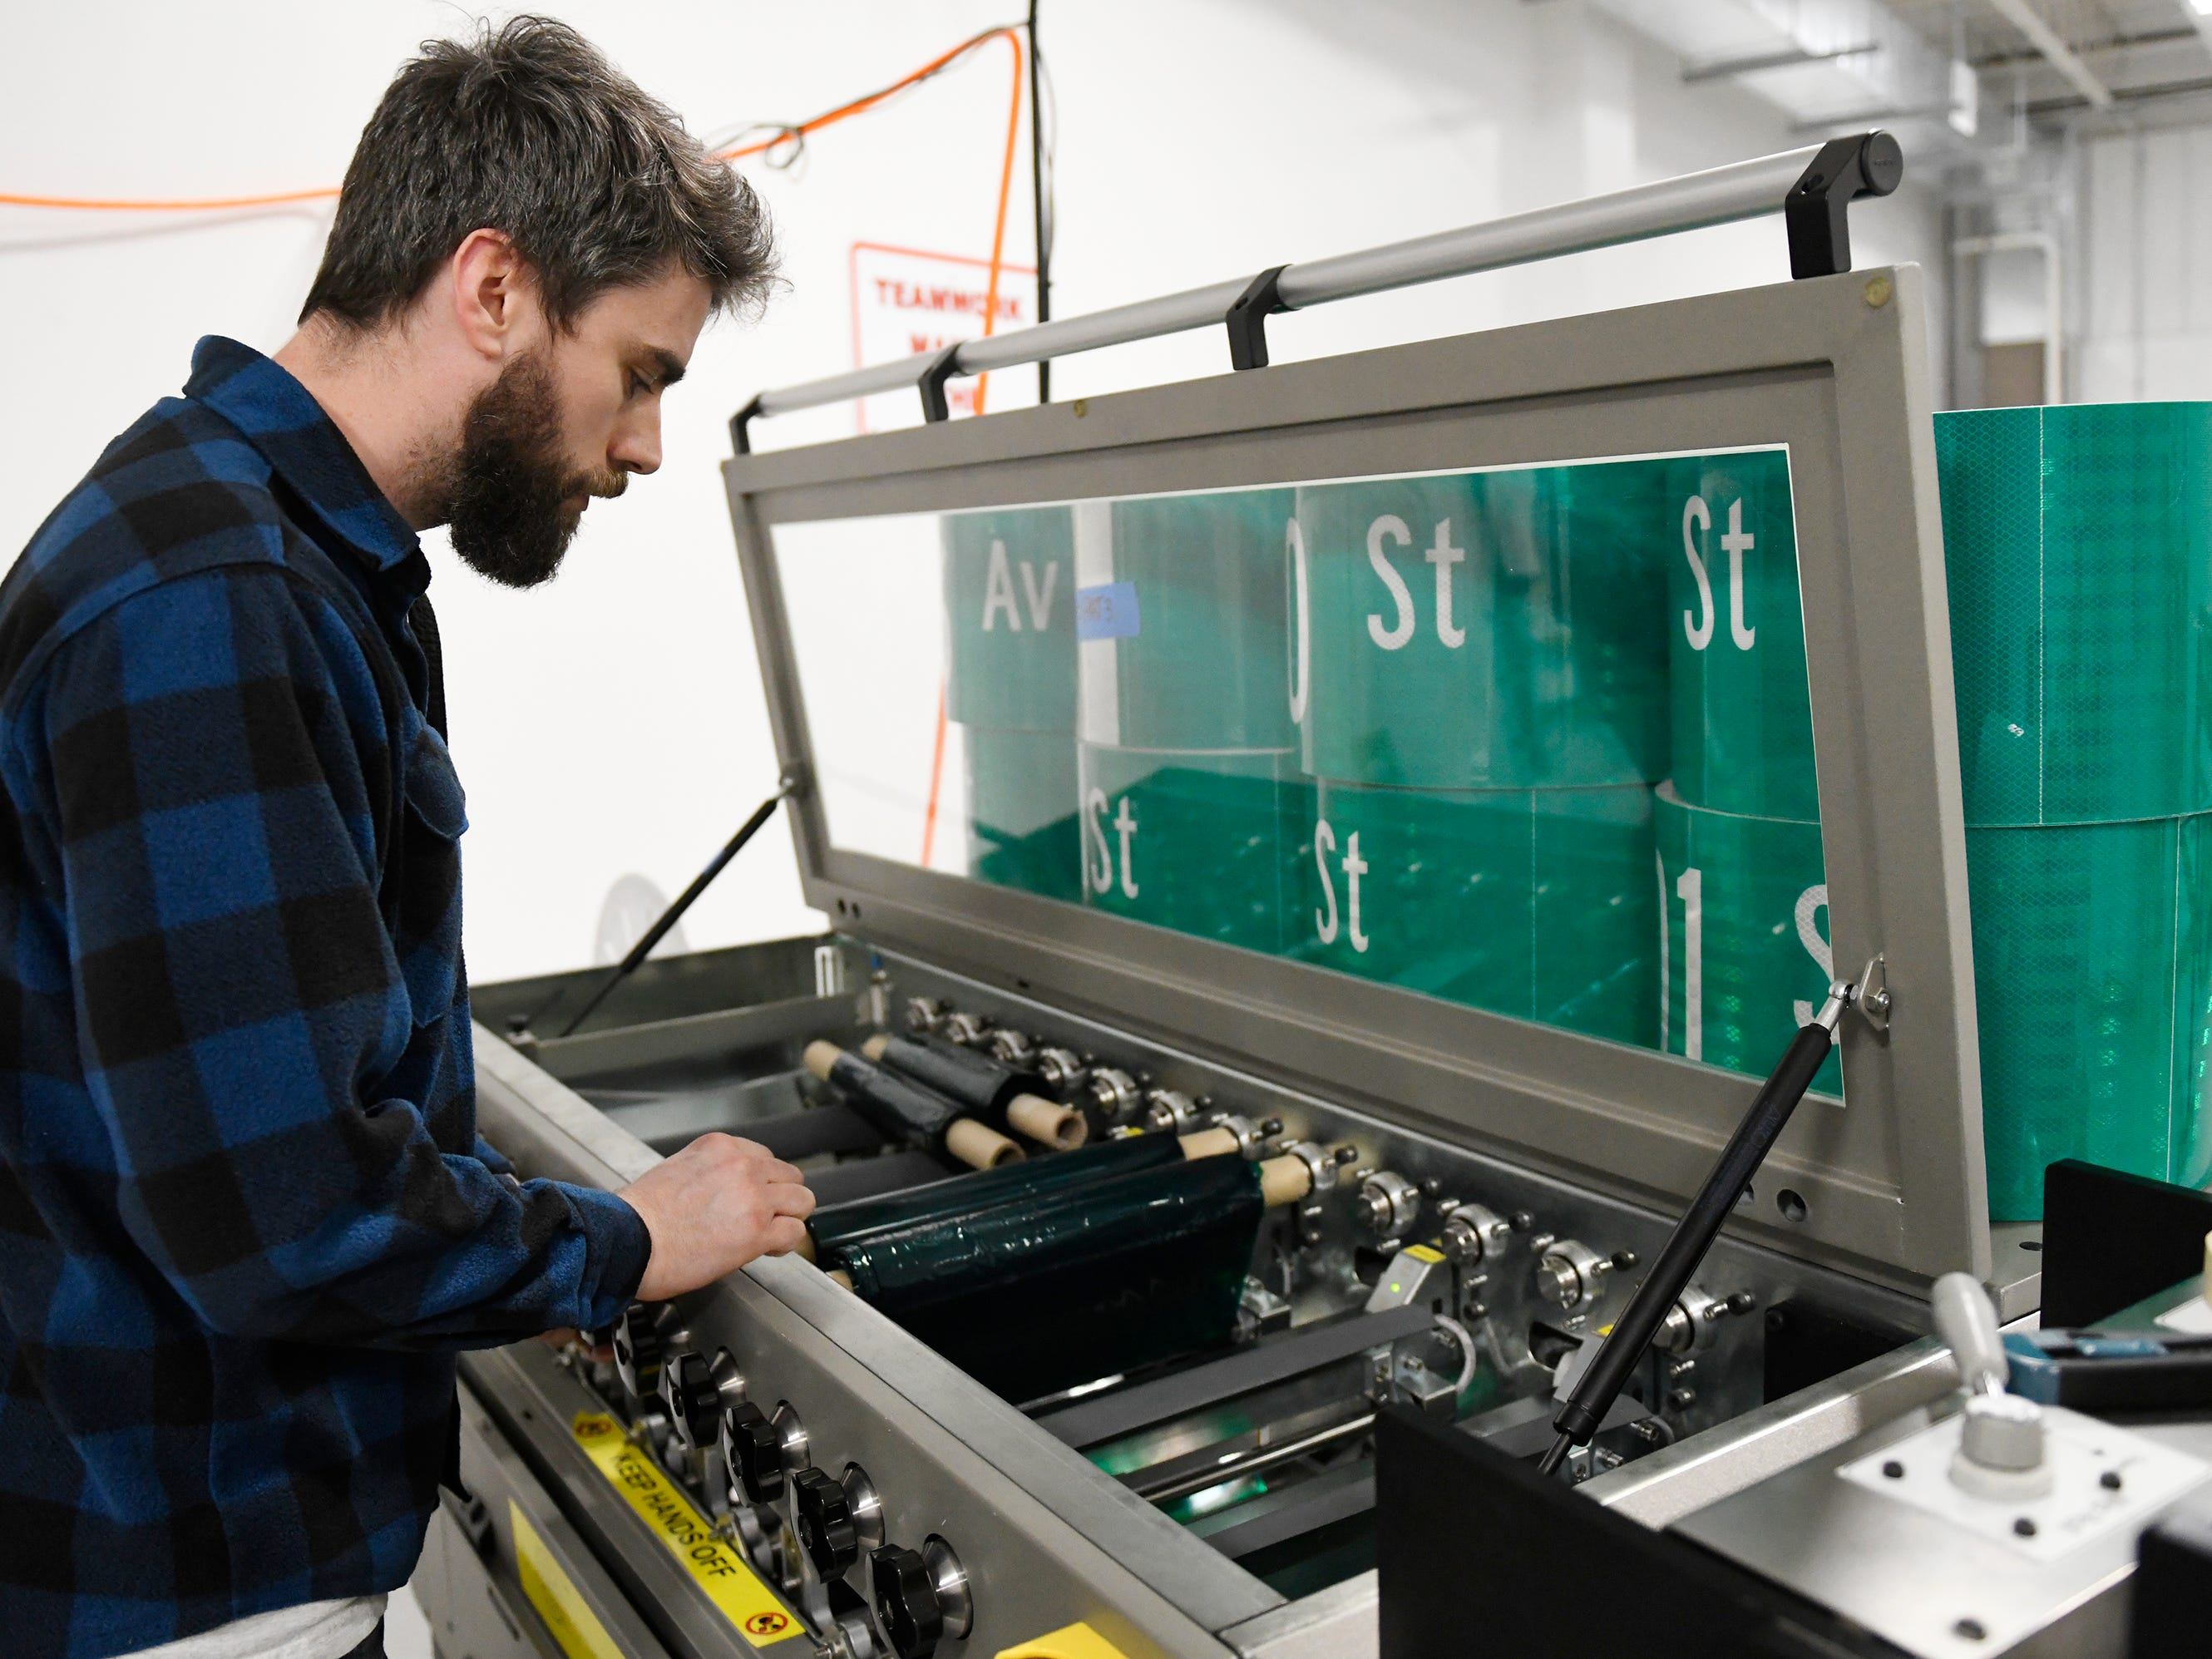 A Garden State Highway Products, Inc. employee checks one of the production machines on Tuesday, Mar. 12, 2019.